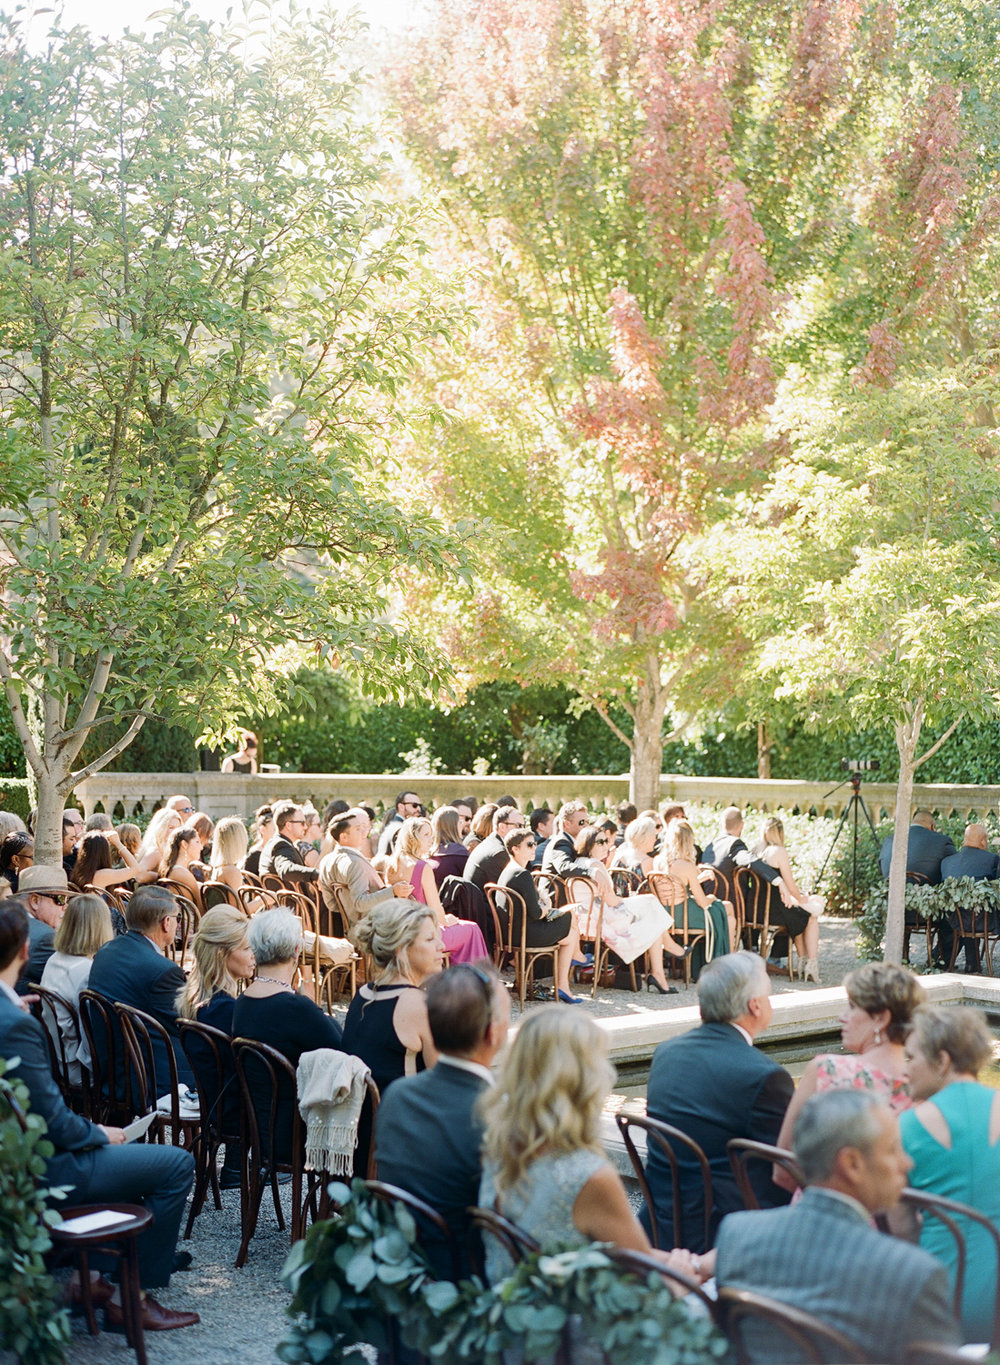 Guests seated in Beaulieu Gardens near the fountain before the wedding ceremony; Sylvie Gil Photography